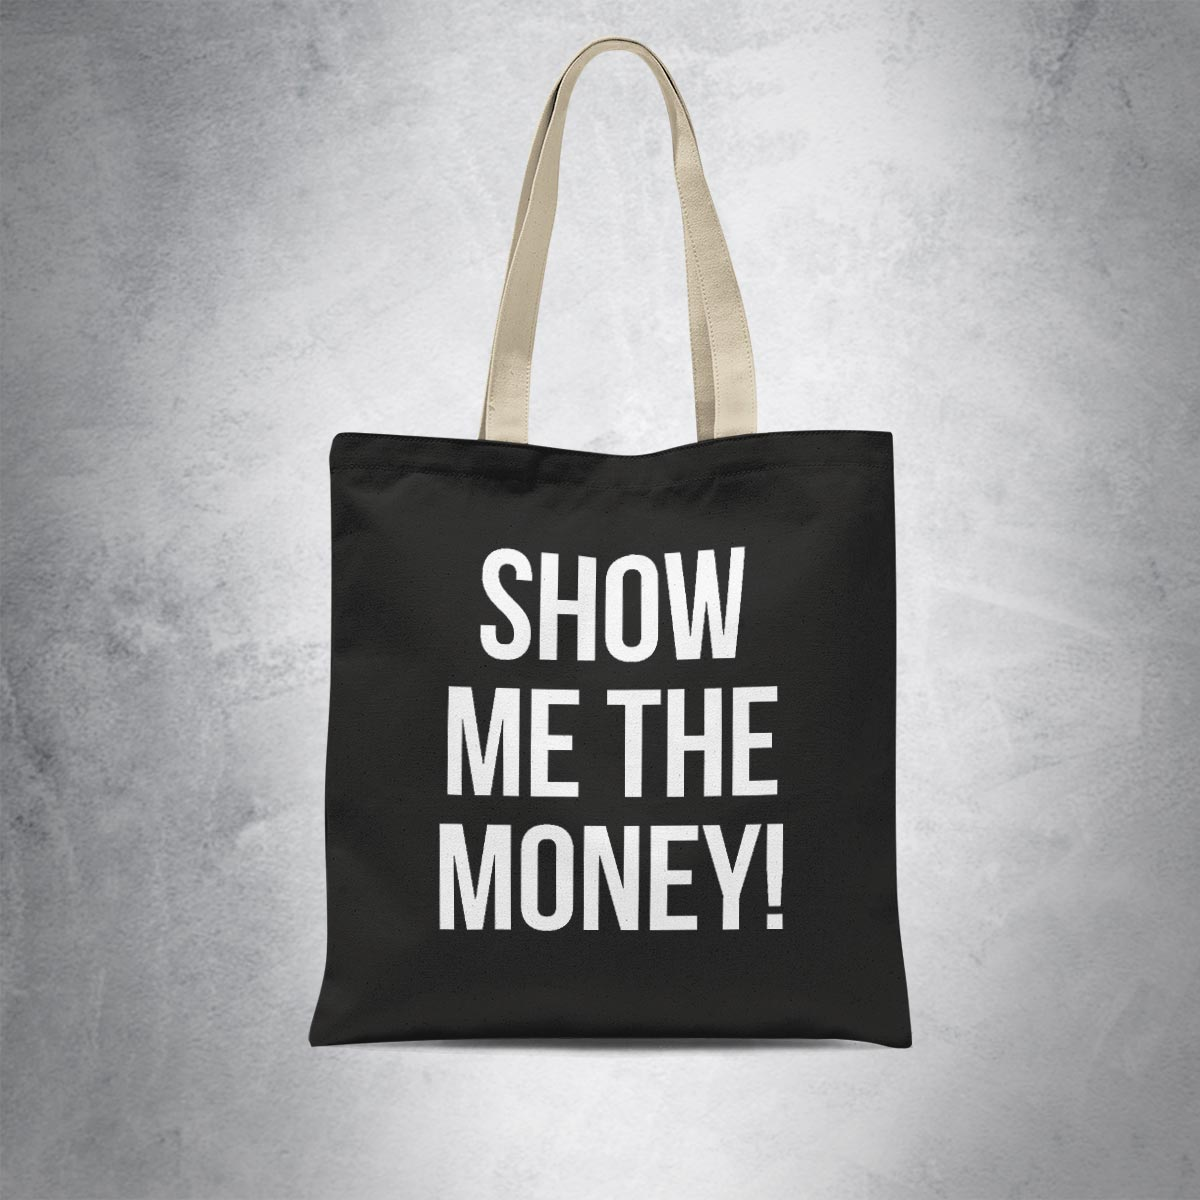 JERRY MAGUIRE - Show me the money